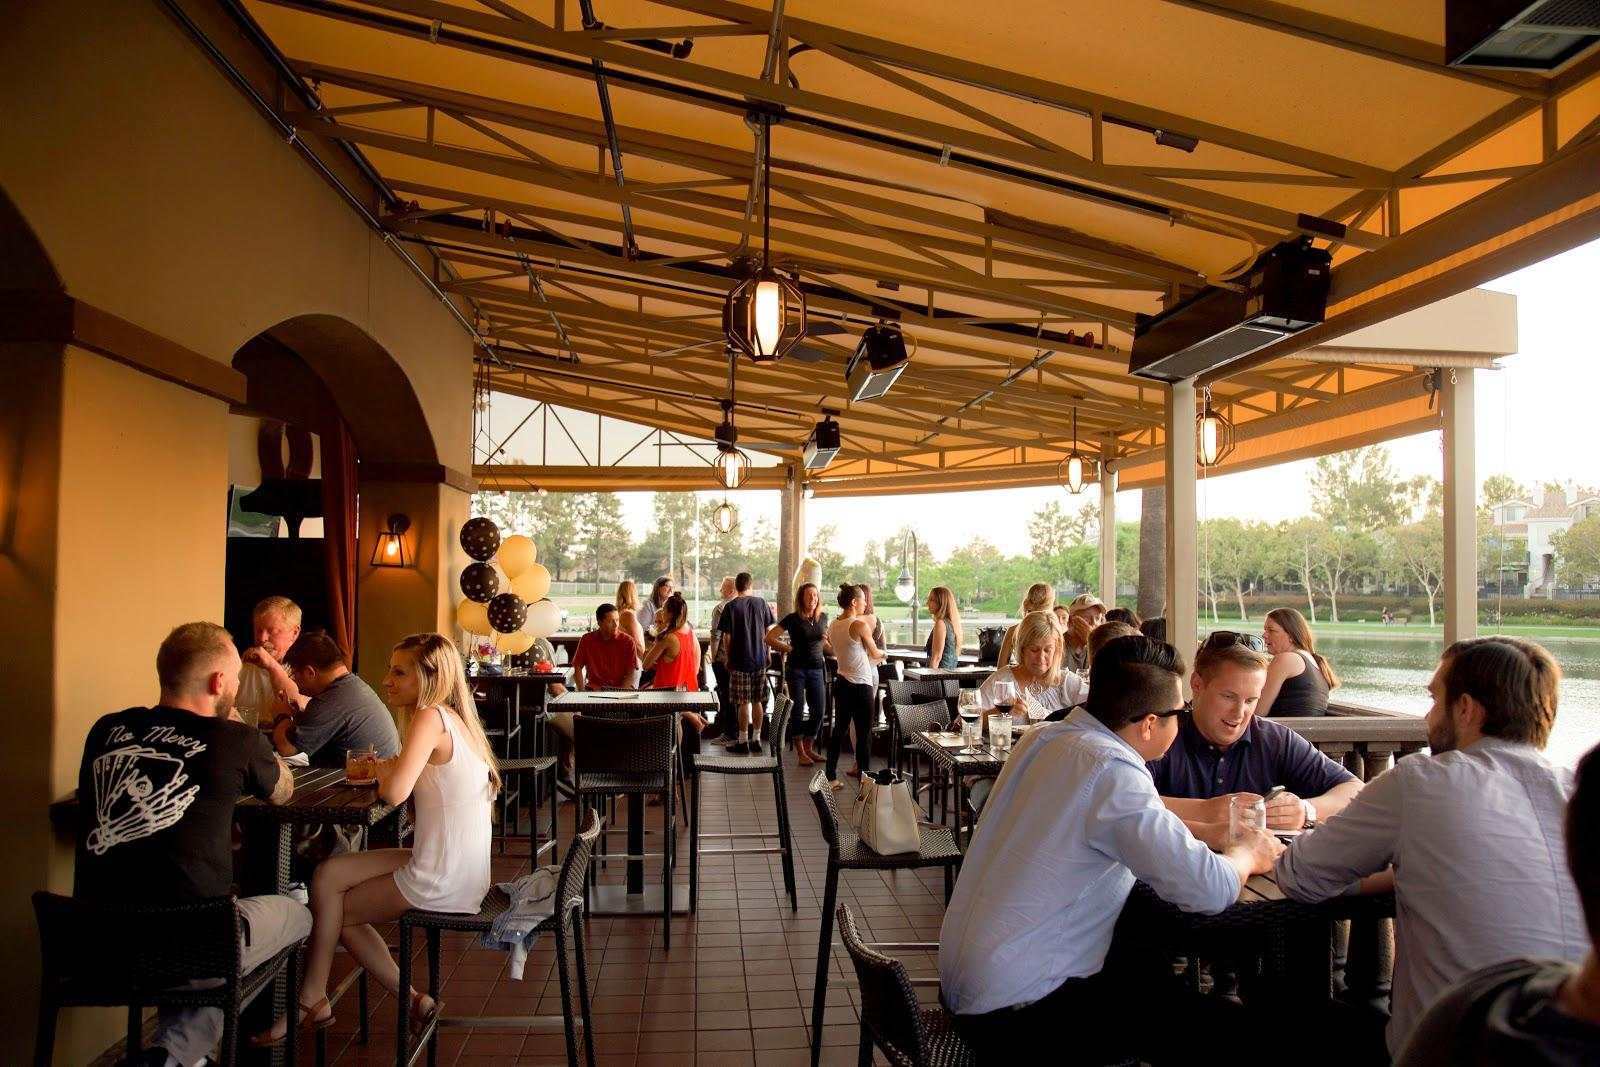 Mother\'s Day Brunch Options In Orange County - Family Review Guide